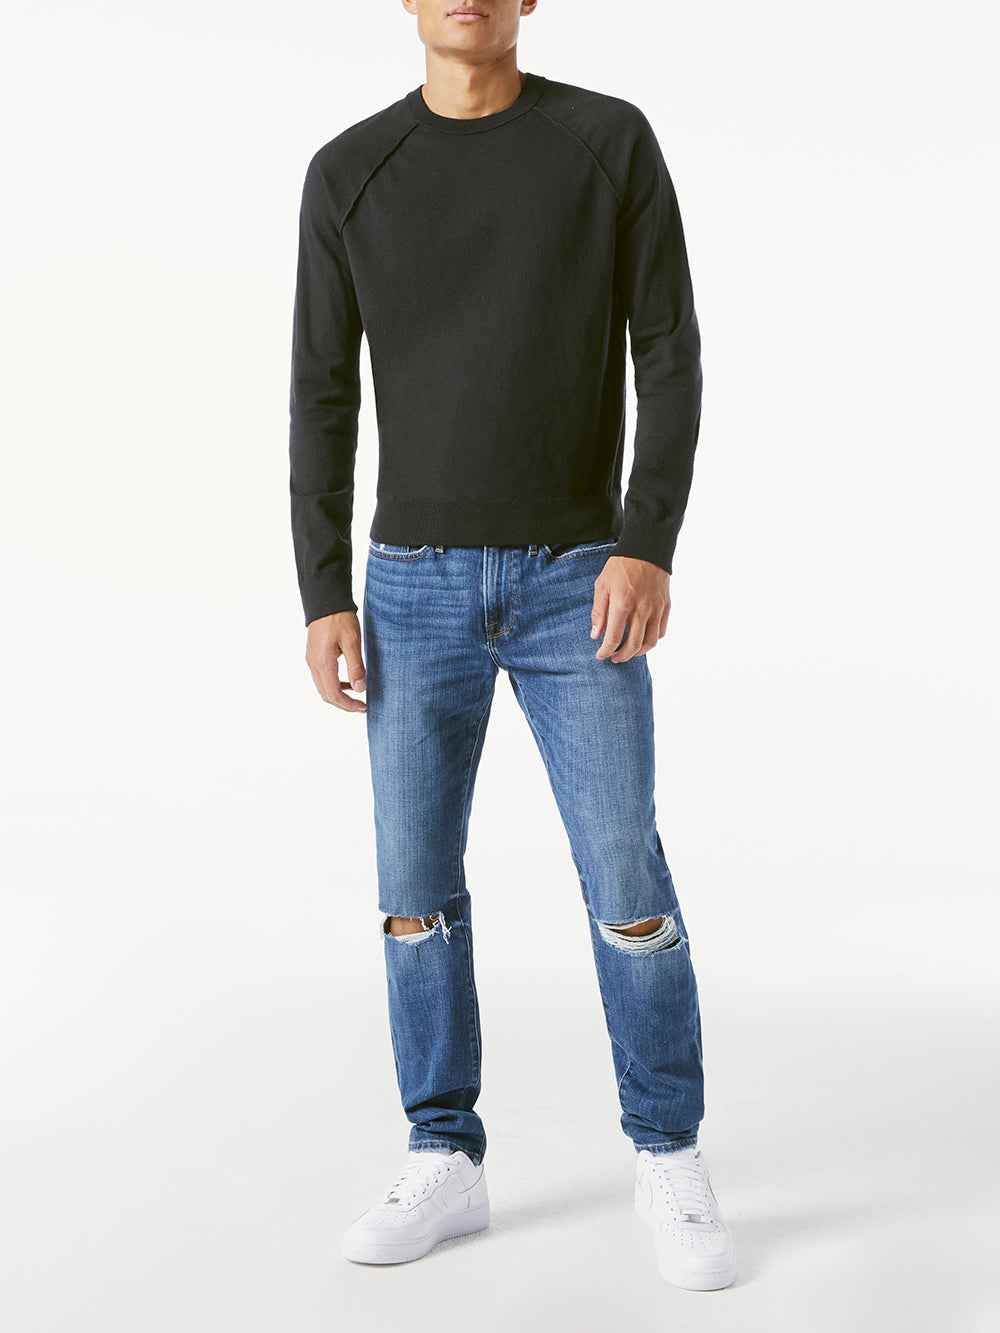 L'Homme Skinny Jean - Telluride Rip-FRAME-Over the Rainbow